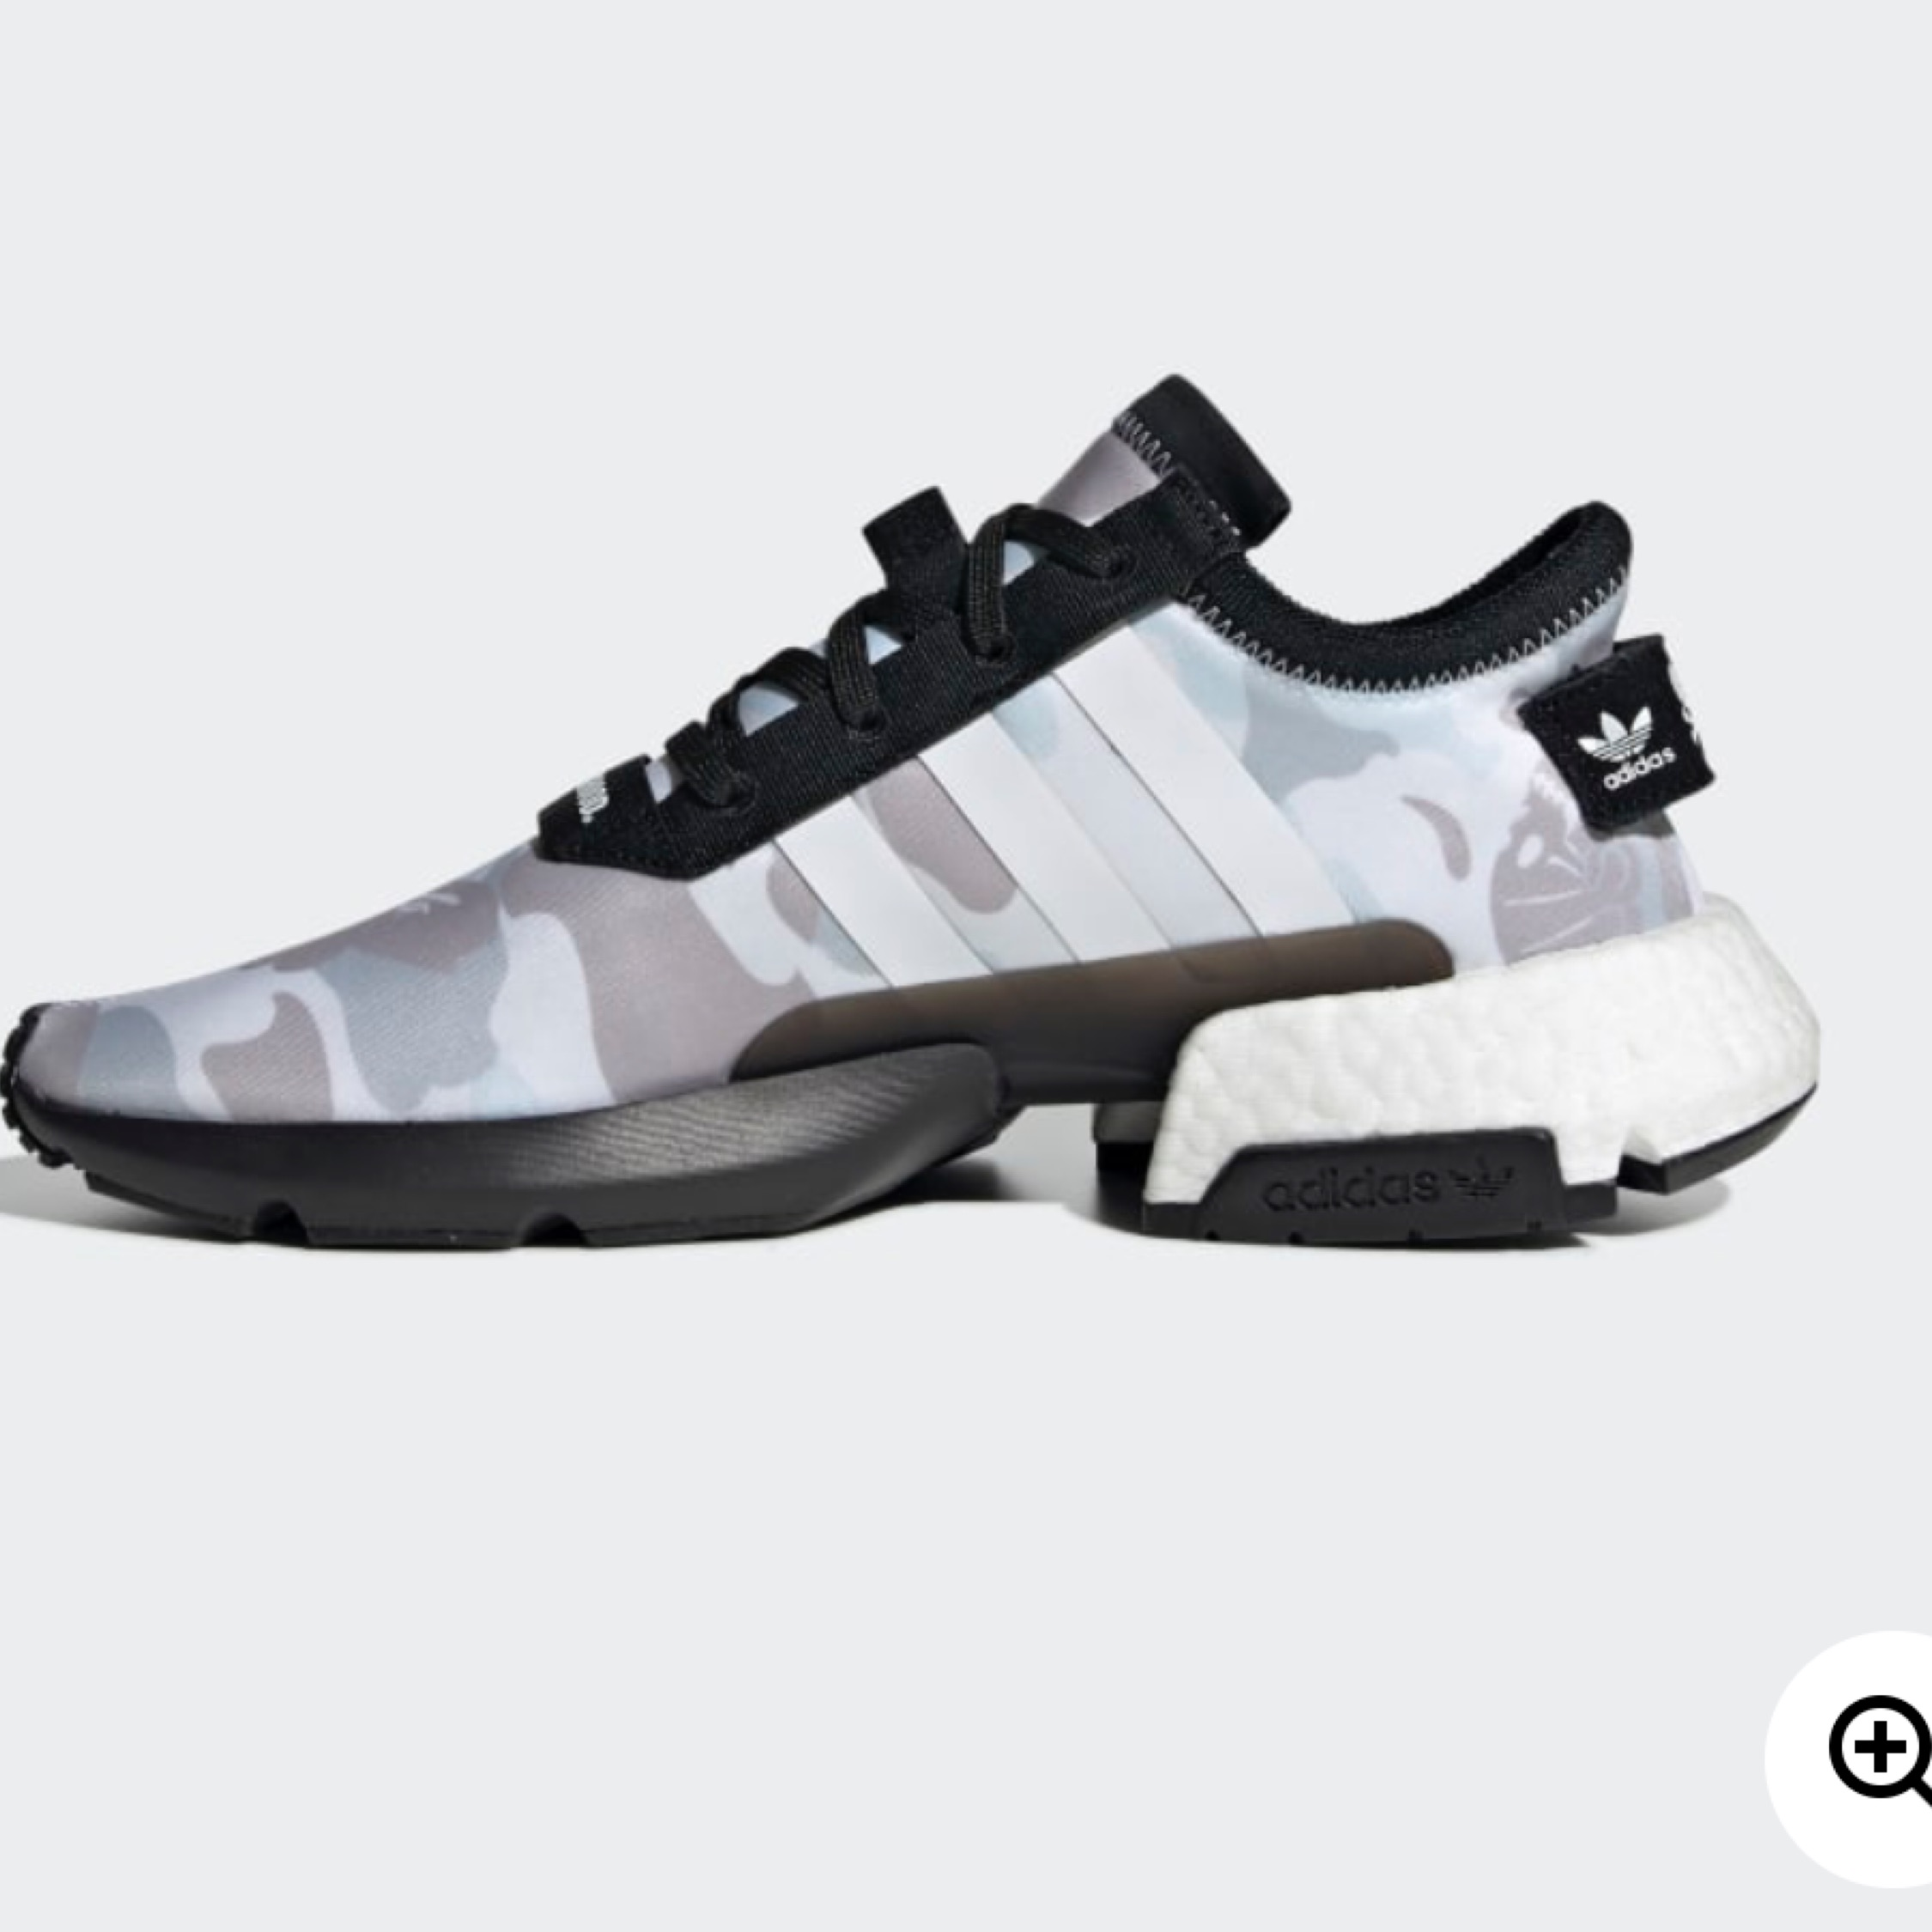 sale retailer d1ddf 2b740 Adidas Neighborhood Bape Pod-S3.1 Shoes